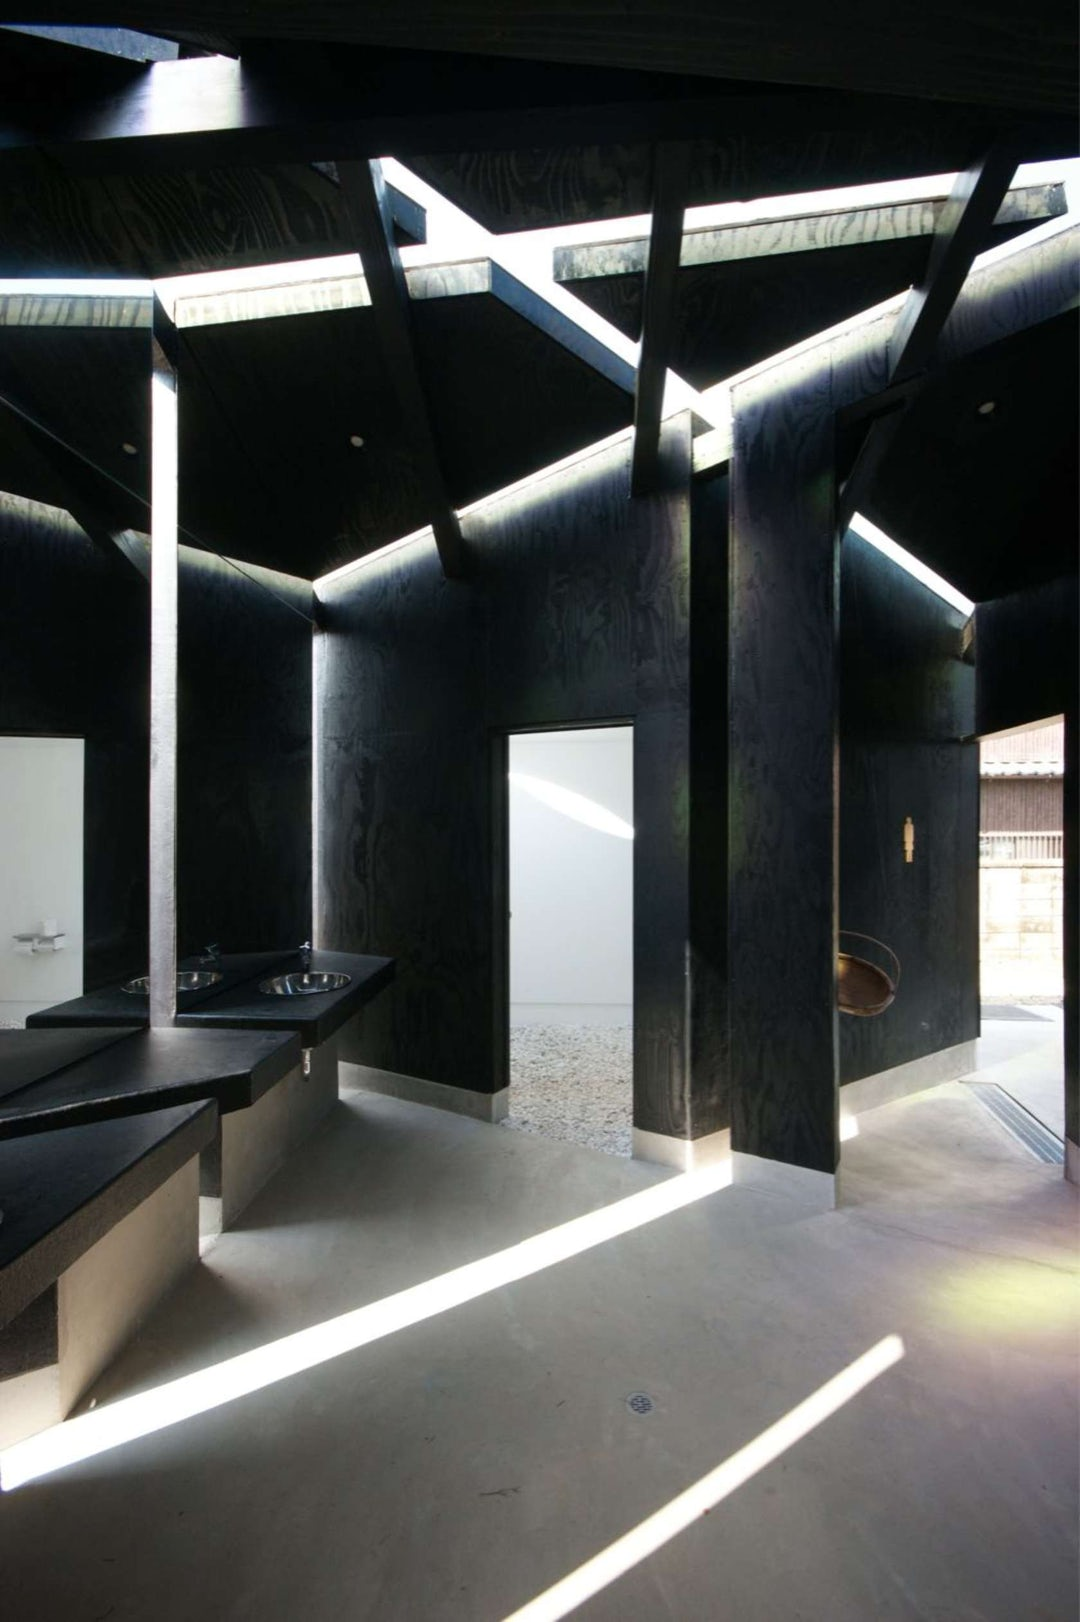 Complete Exposure To Extreme Intimacy 10 Stunning Public Restrooms Architizer